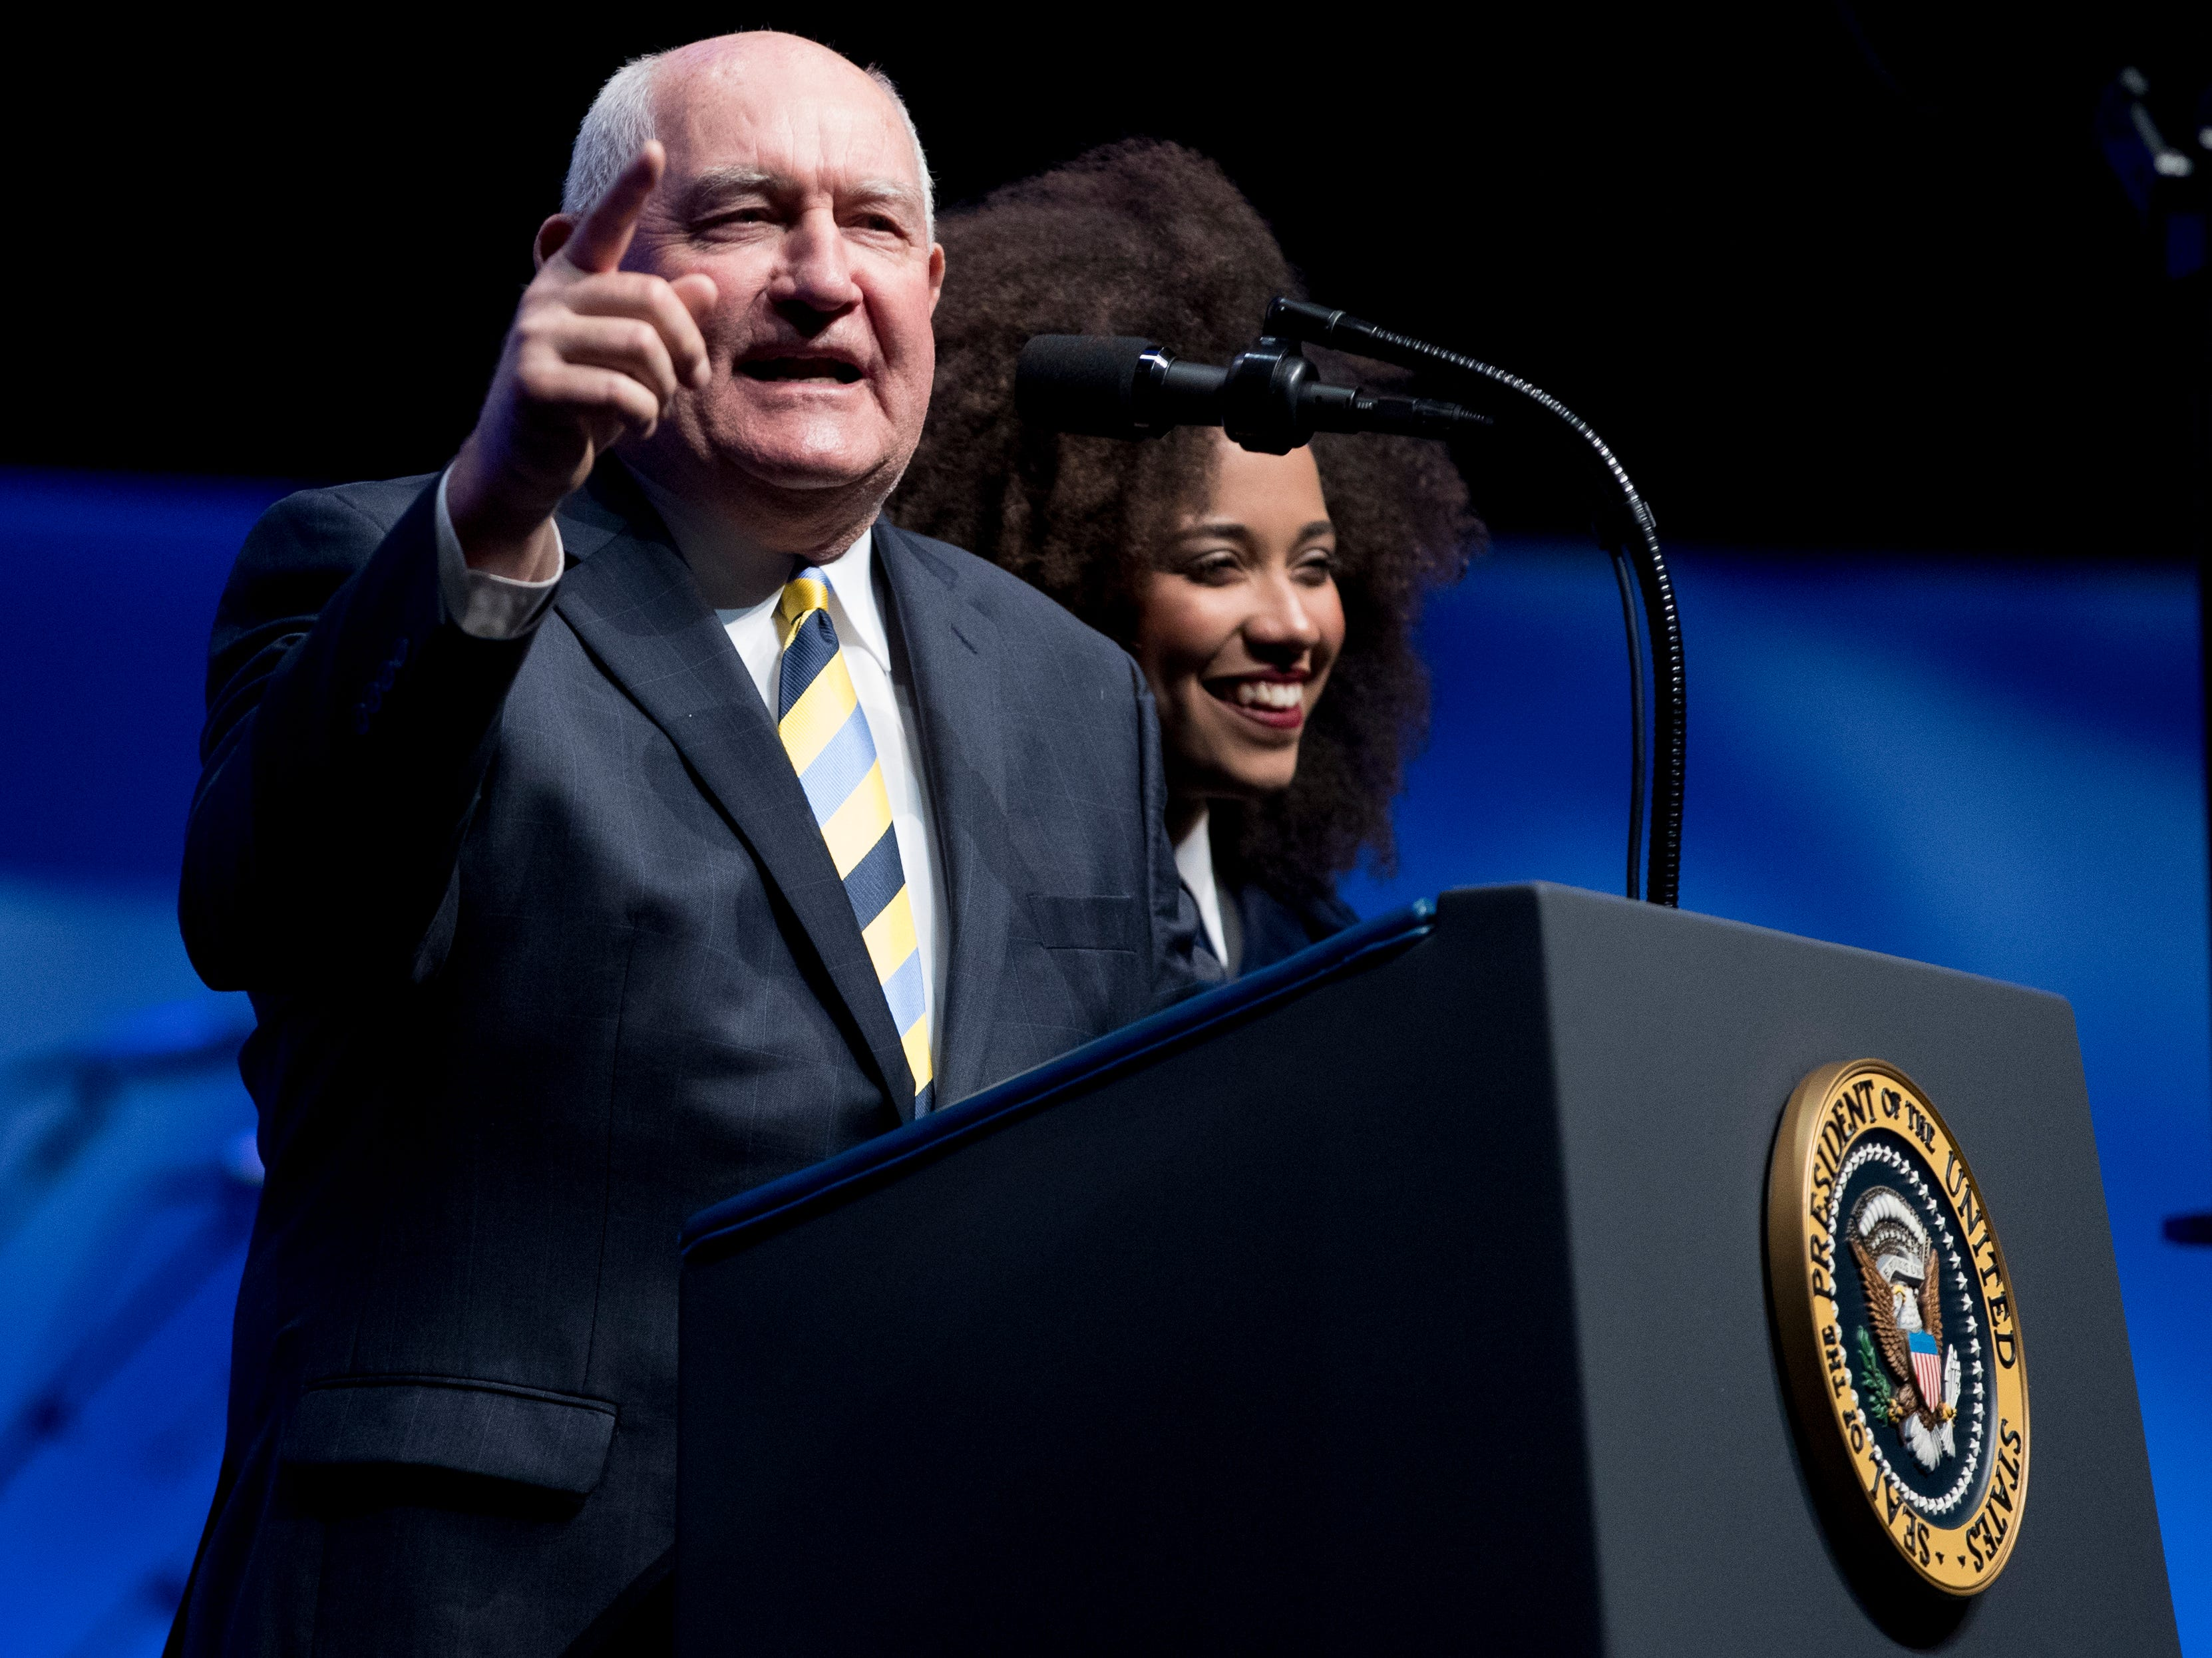 Agriculture Secretary Sonny Perdue, accompanied by Future Farmers of America President Breanna Holbert, right, speaks before President Donald Trump at the 91st Annual Future Farmers of America Convention and Expo at Bankers Life Fieldhouse in Indianapolis, Saturday, Oct. 27, 2018. (AP Photo/Andrew Harnik)